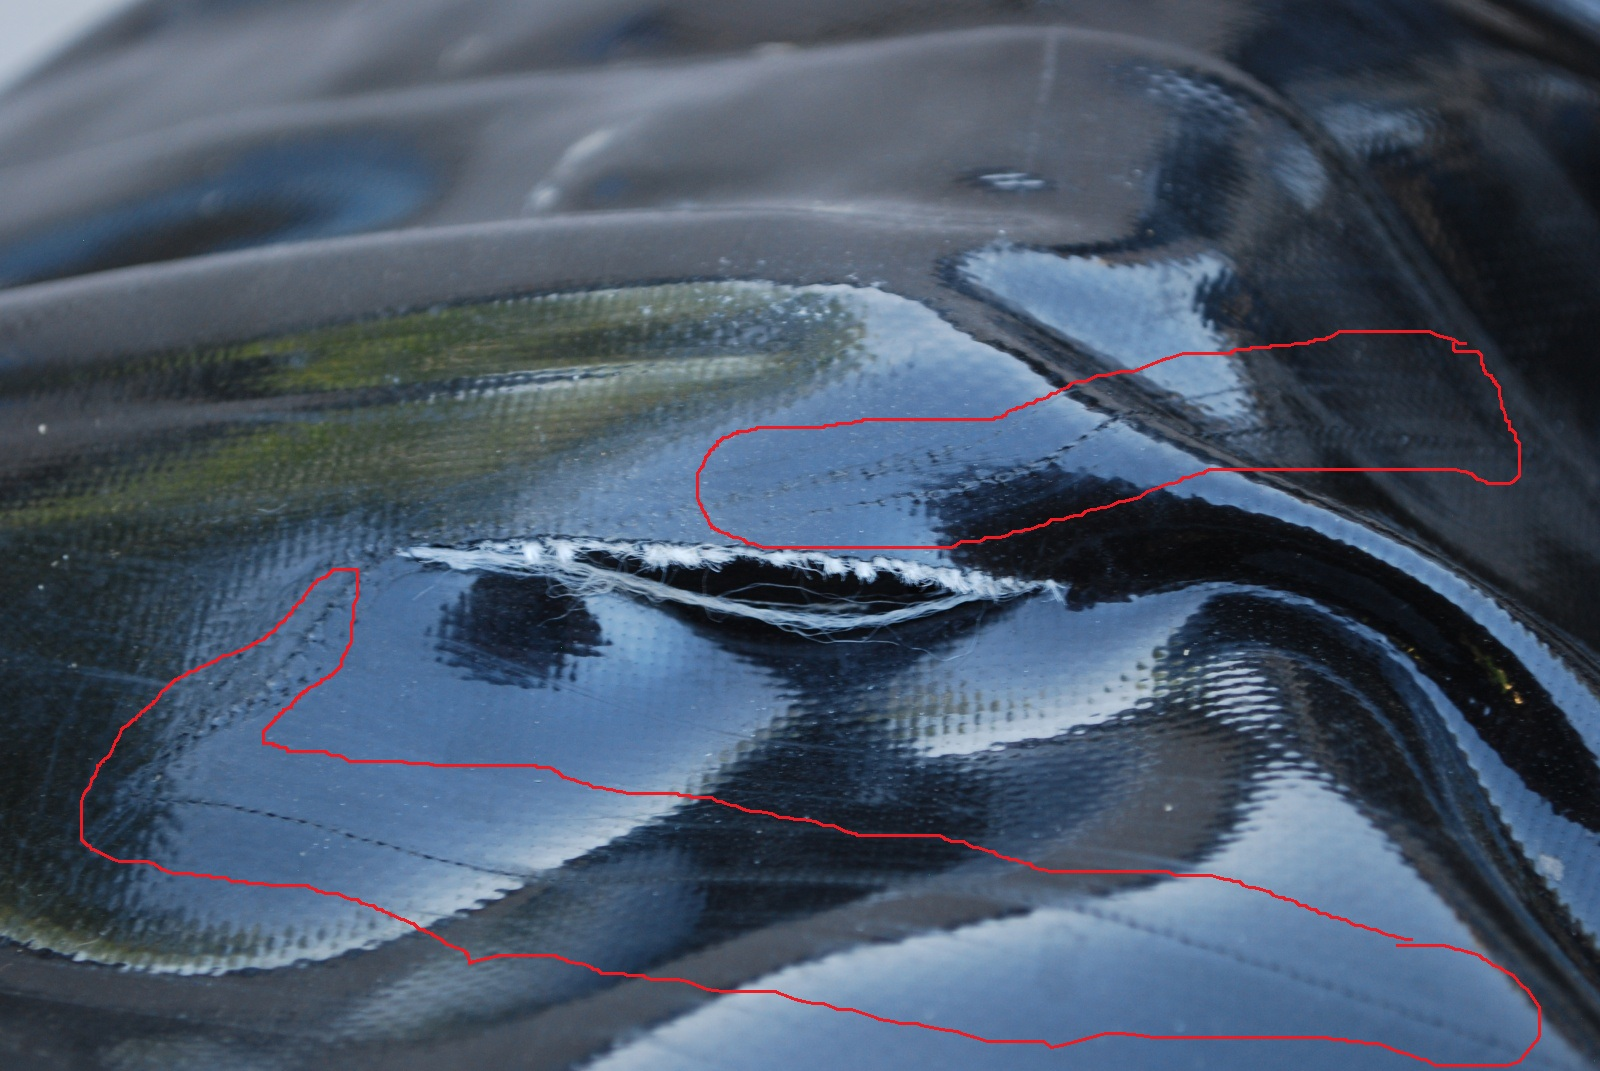 Click image for larger version  Name:NRS boat tear.jpg Views:256 Size:399.8 KB ID:3858